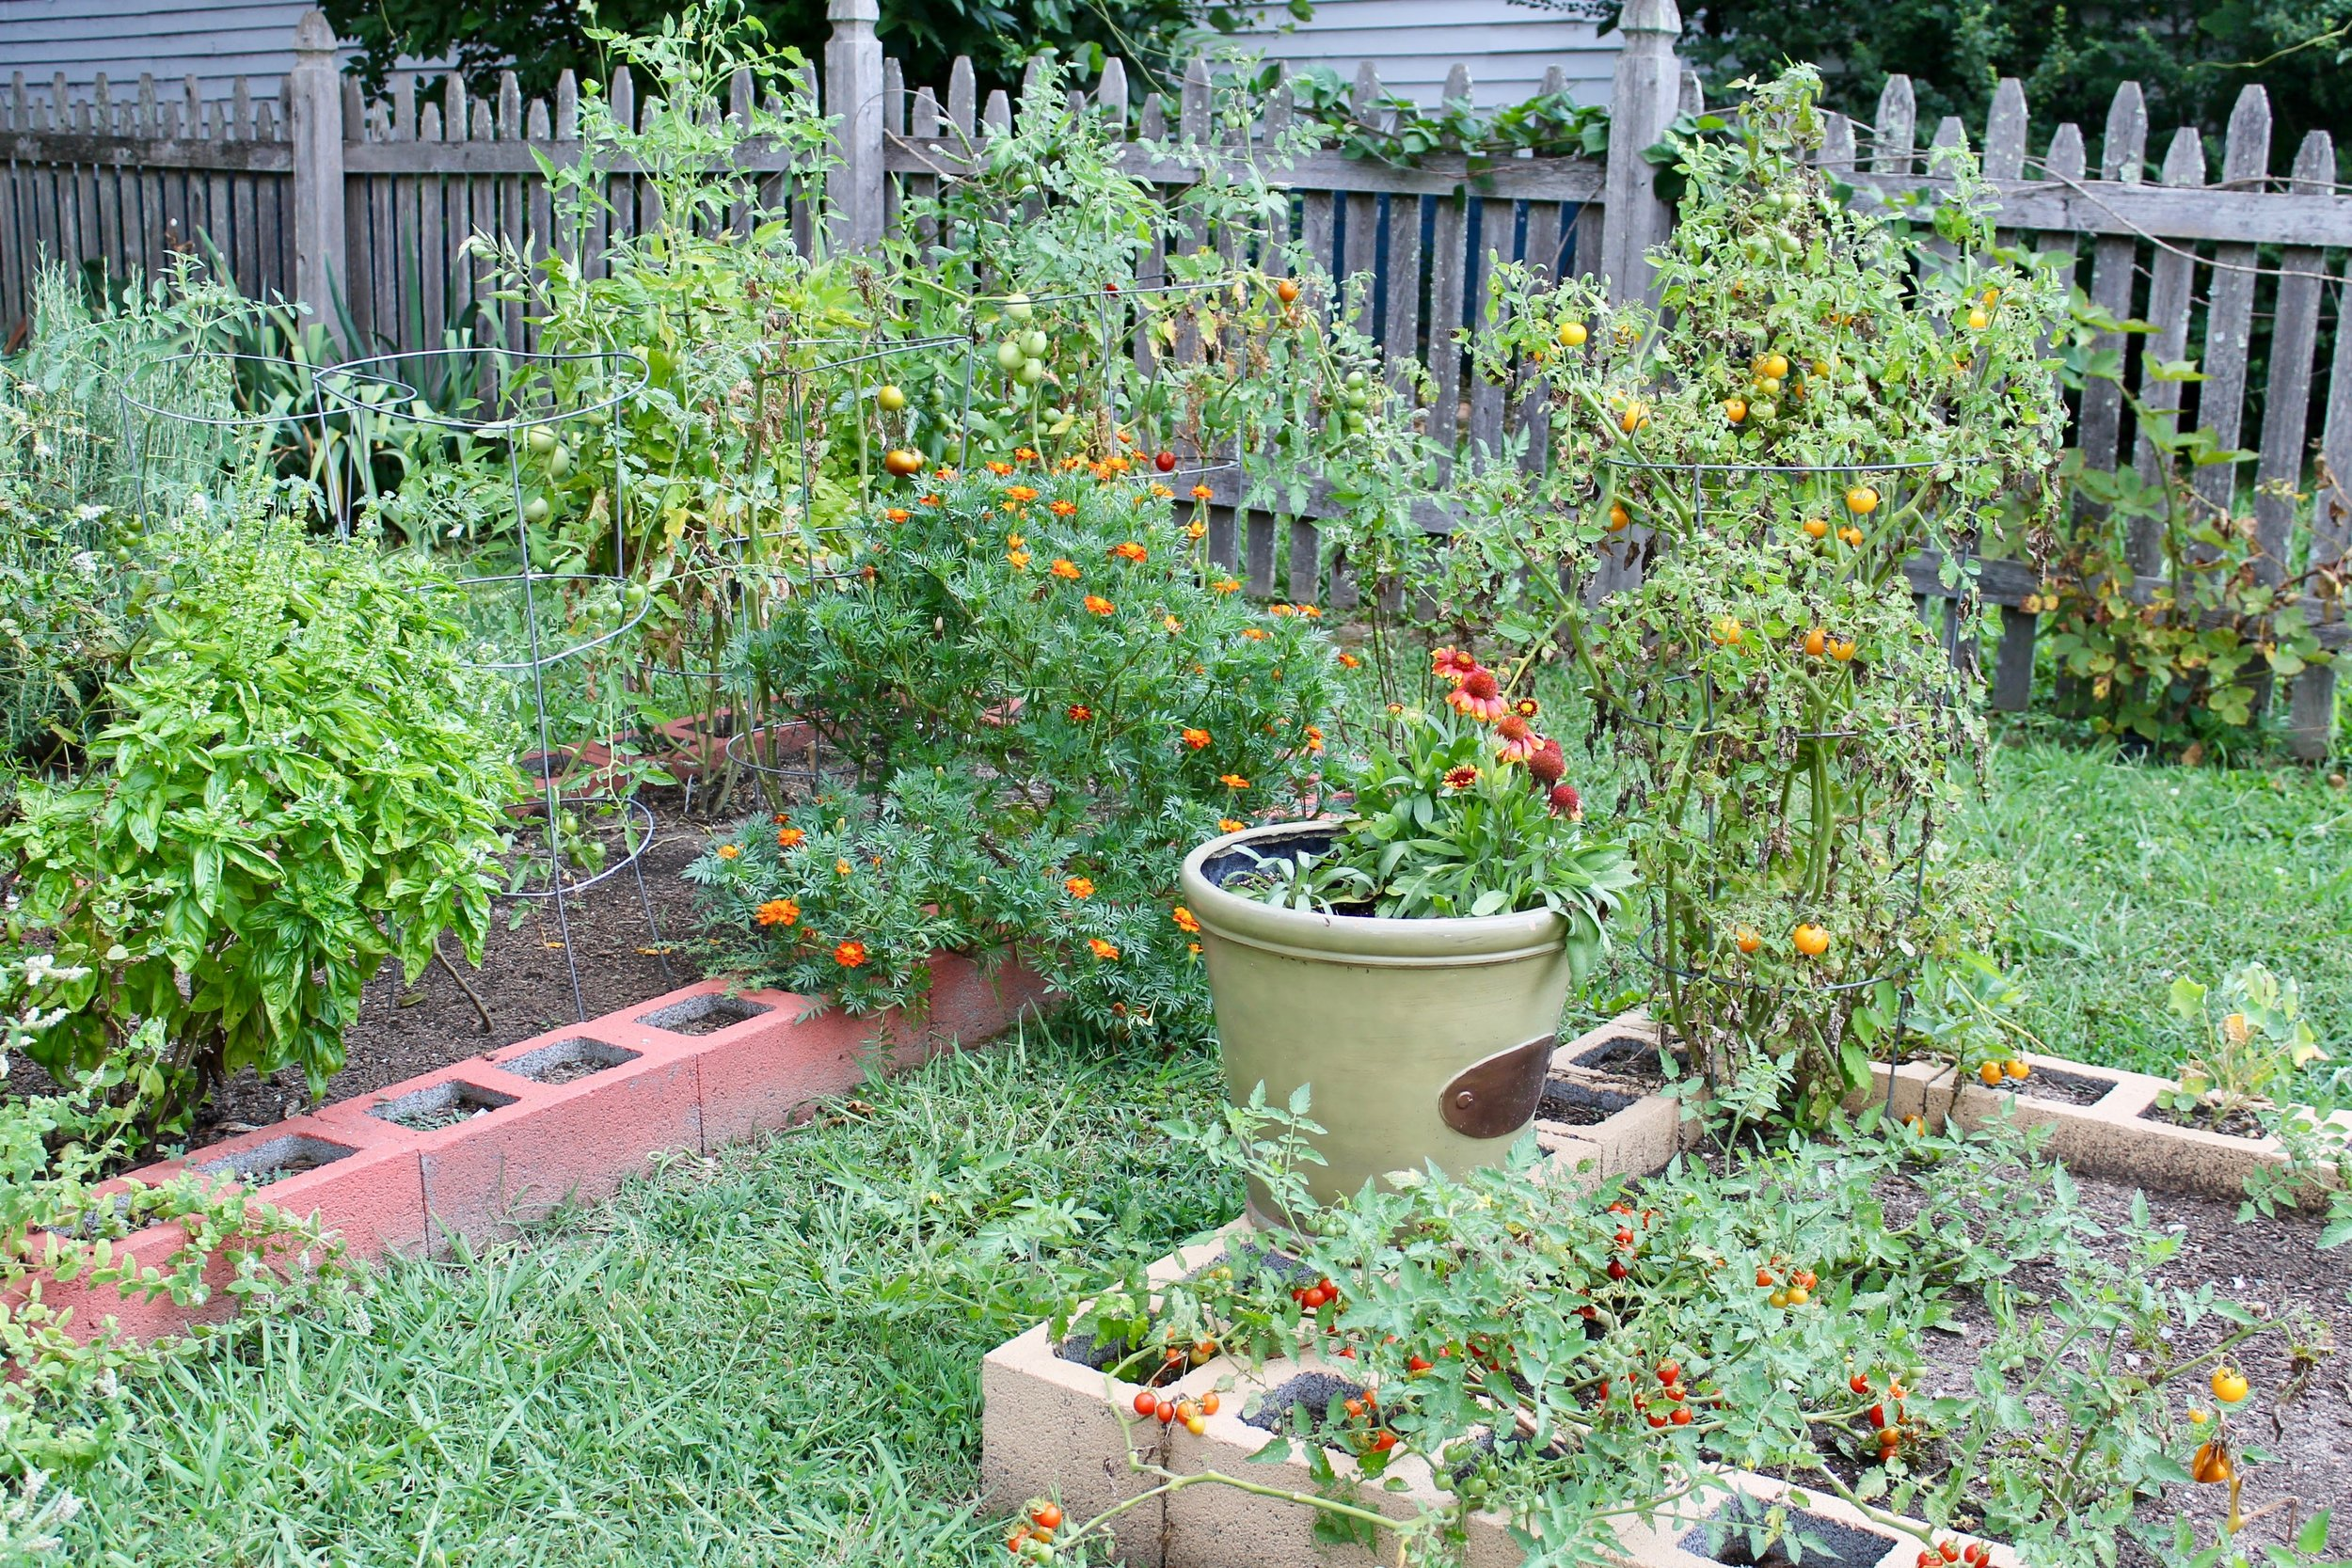 Raised beds in the front and side yard are home to tomatoes, peppers, and all kinds of herbs